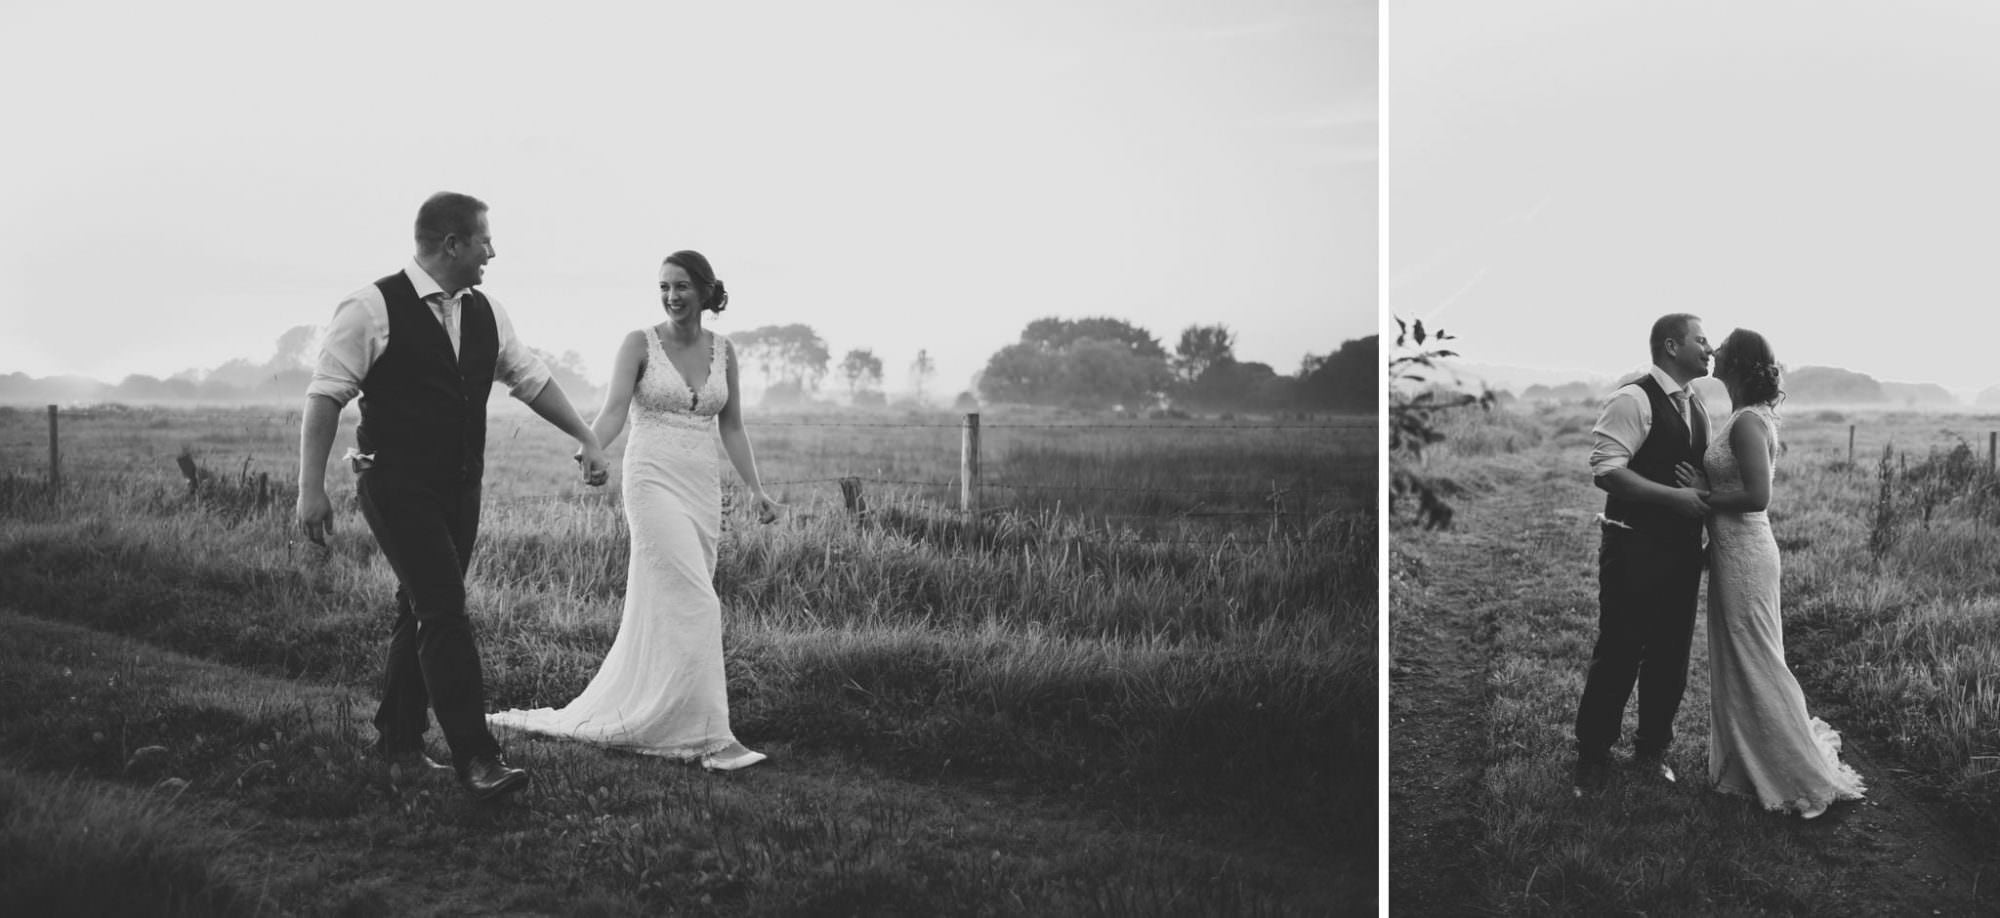 Sopley Wedding day captured by Rachel Elizabeth Photography